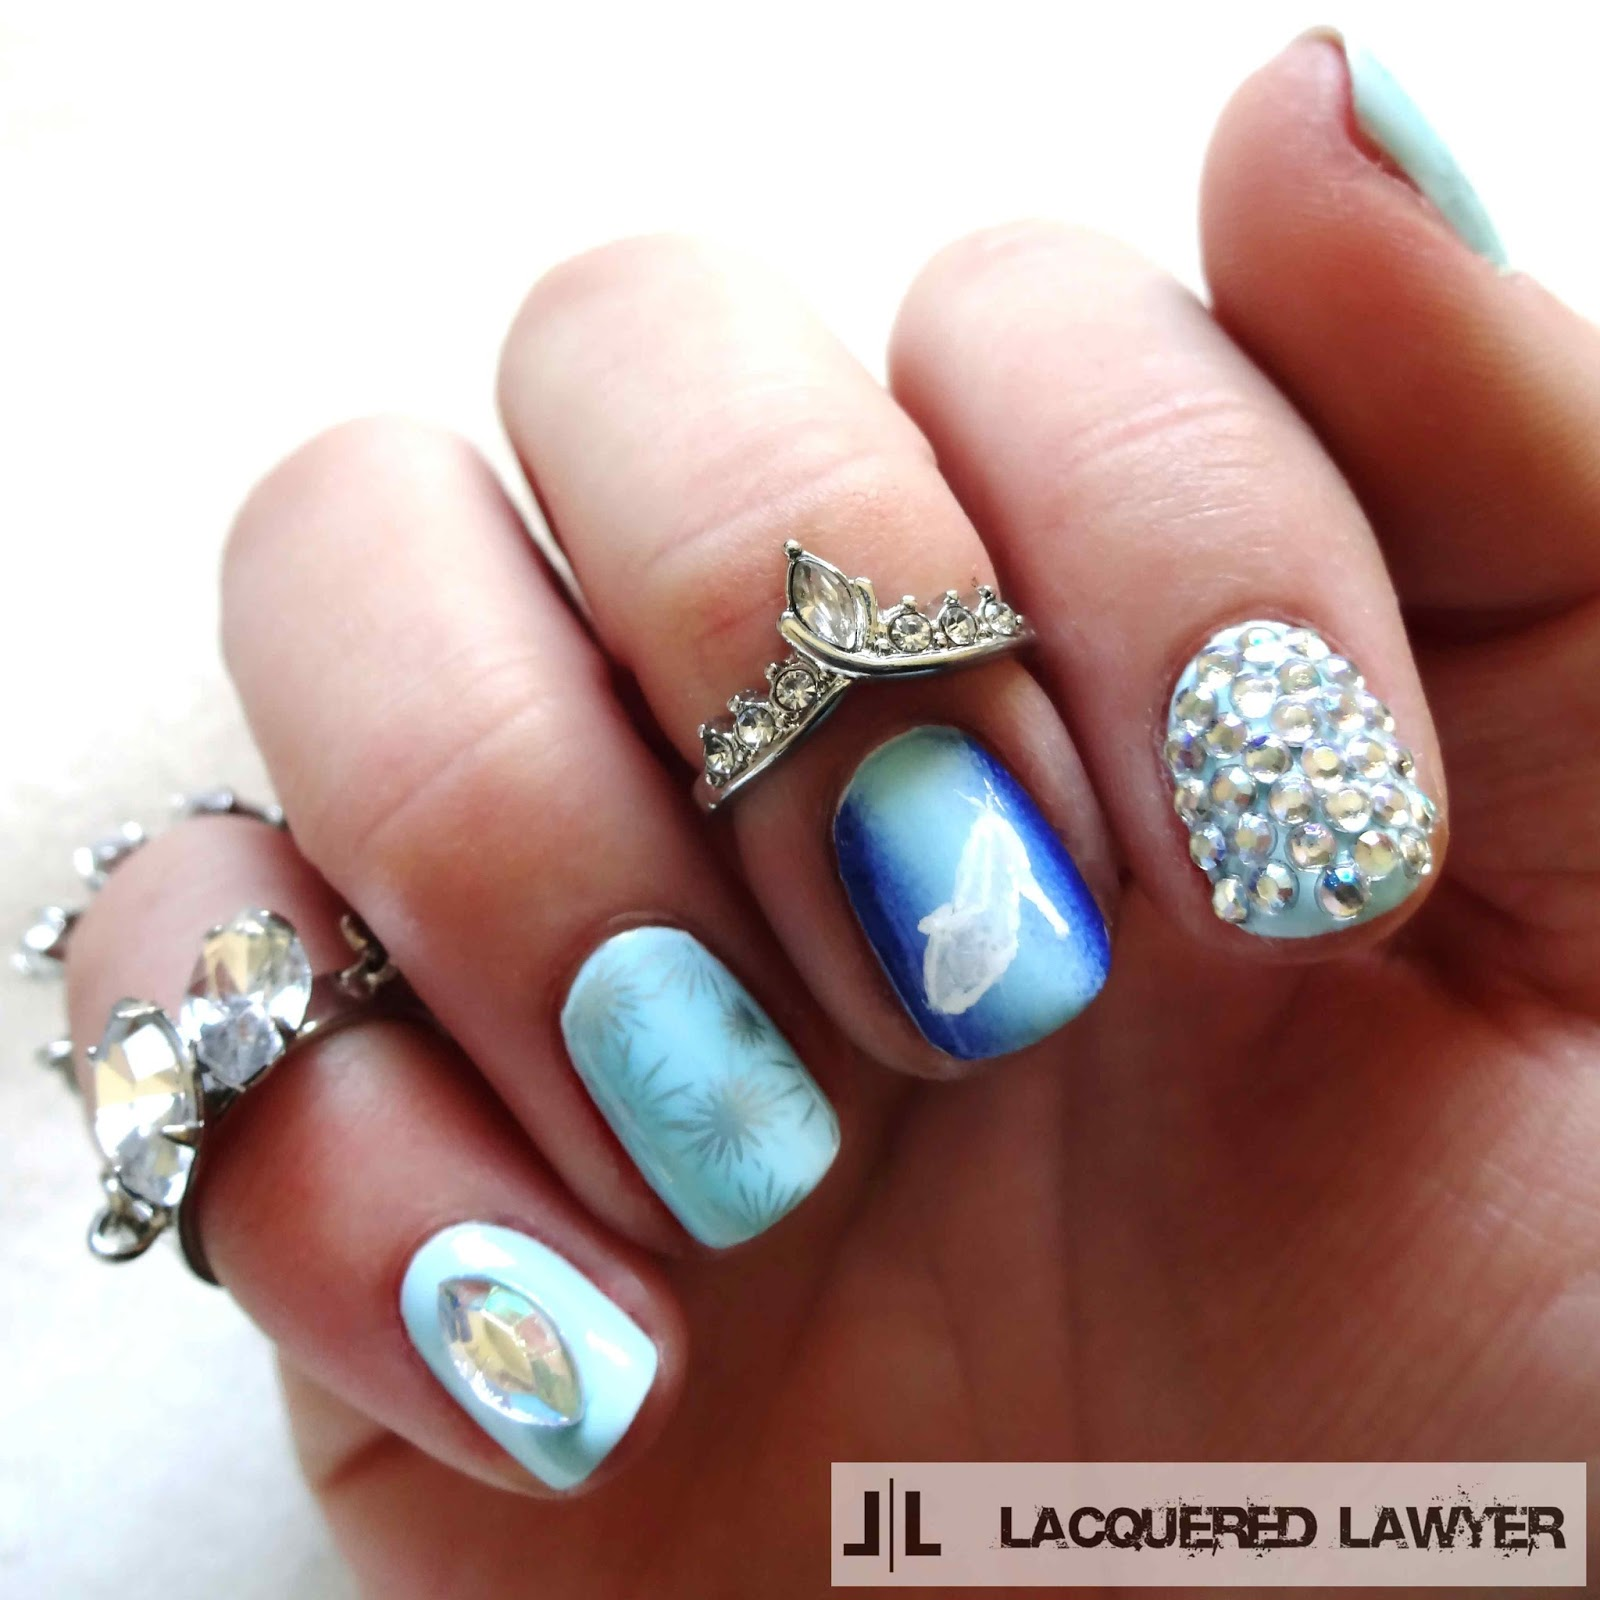 Lacquered Lawyer | Nail Art Blog: December 2014